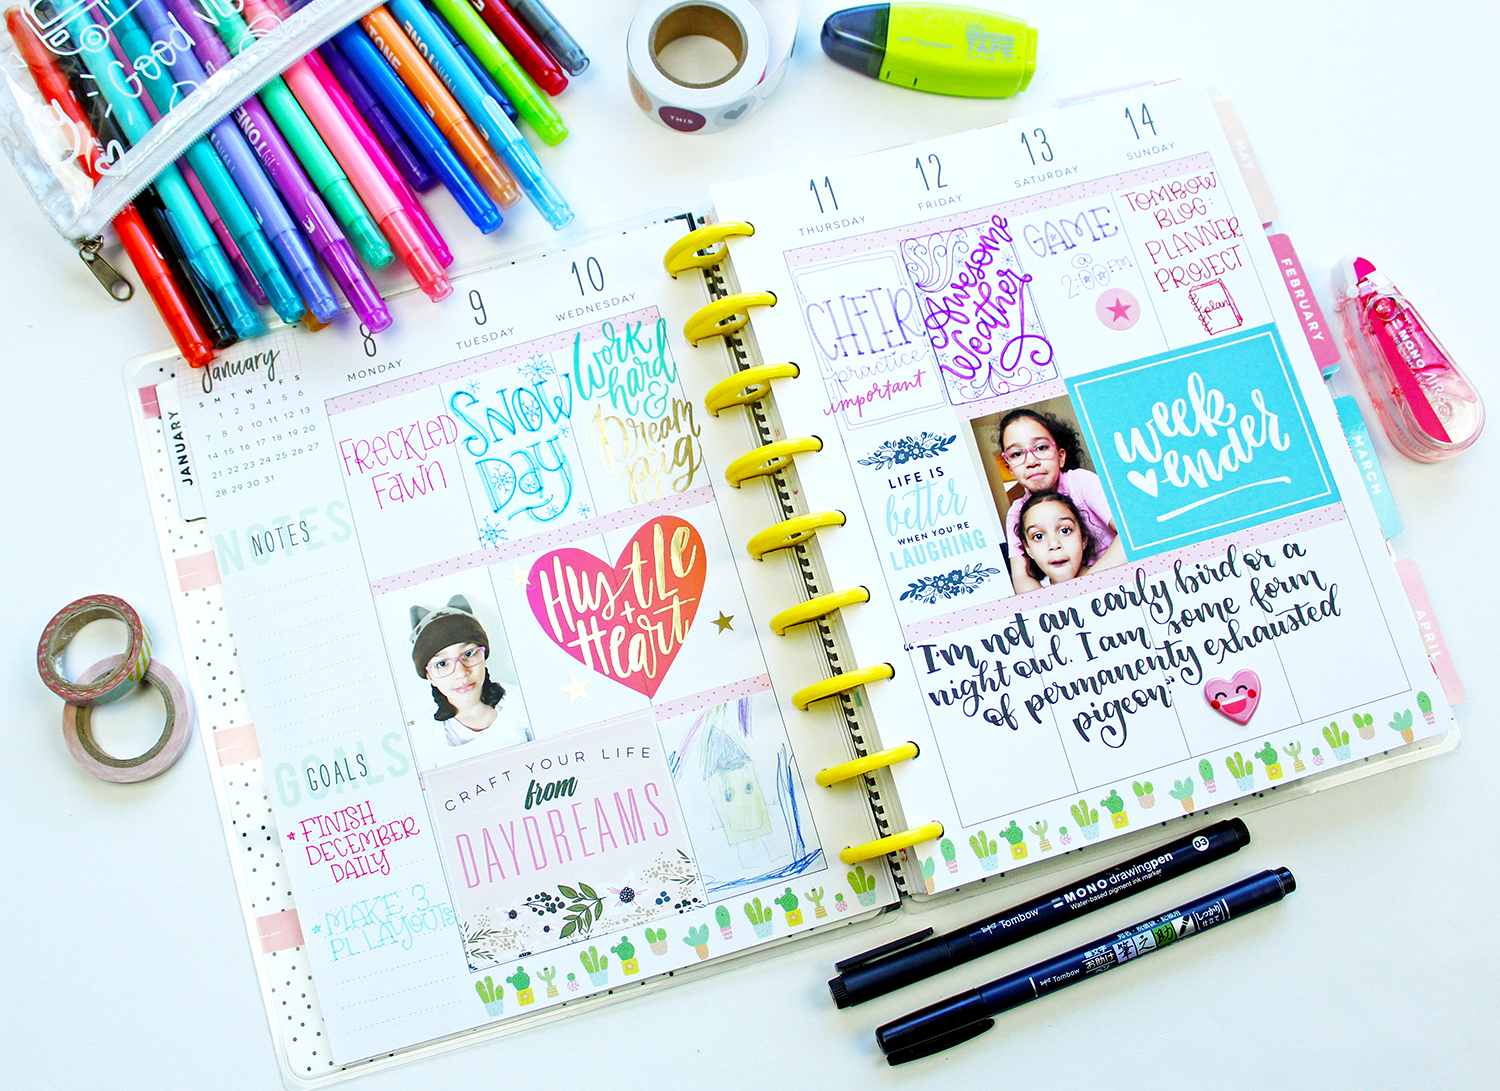 If getting organized is on your agenda this year check out this list! @jenniegarcian created this list with the best planner products! #planner #tombow